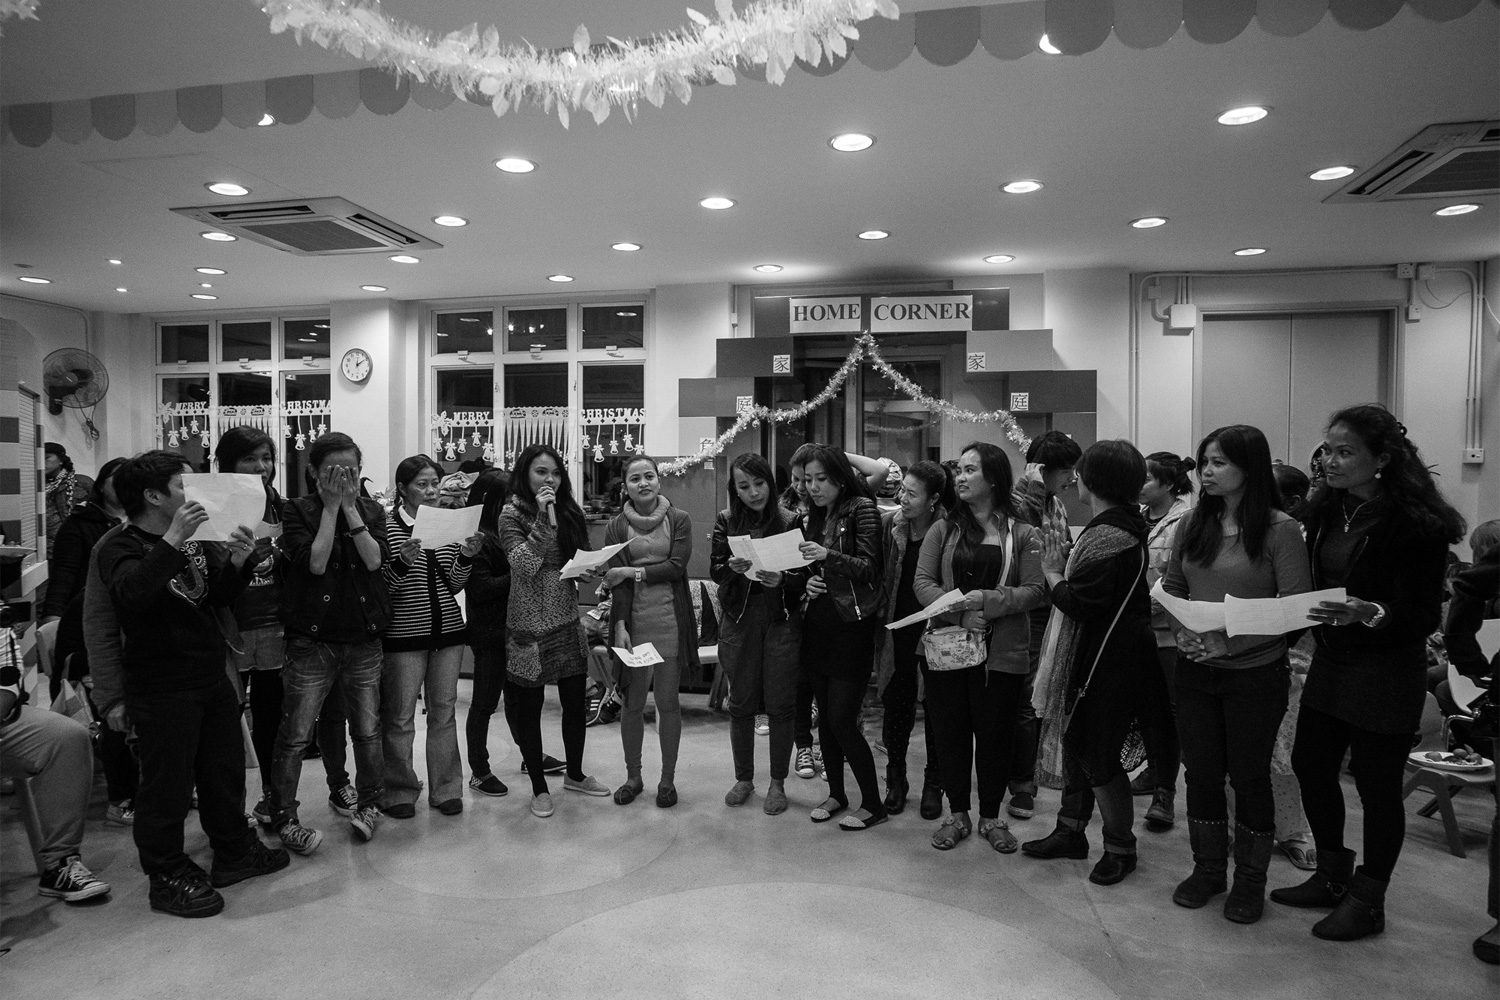 Residents of the shelter celebrated Christmas in 2014 at the Kowloon Union Church. They read their wishes and sang Christmas carols. Many of them said that the festivities helped lift their spirits and made them forget their troubles, if only for a while.